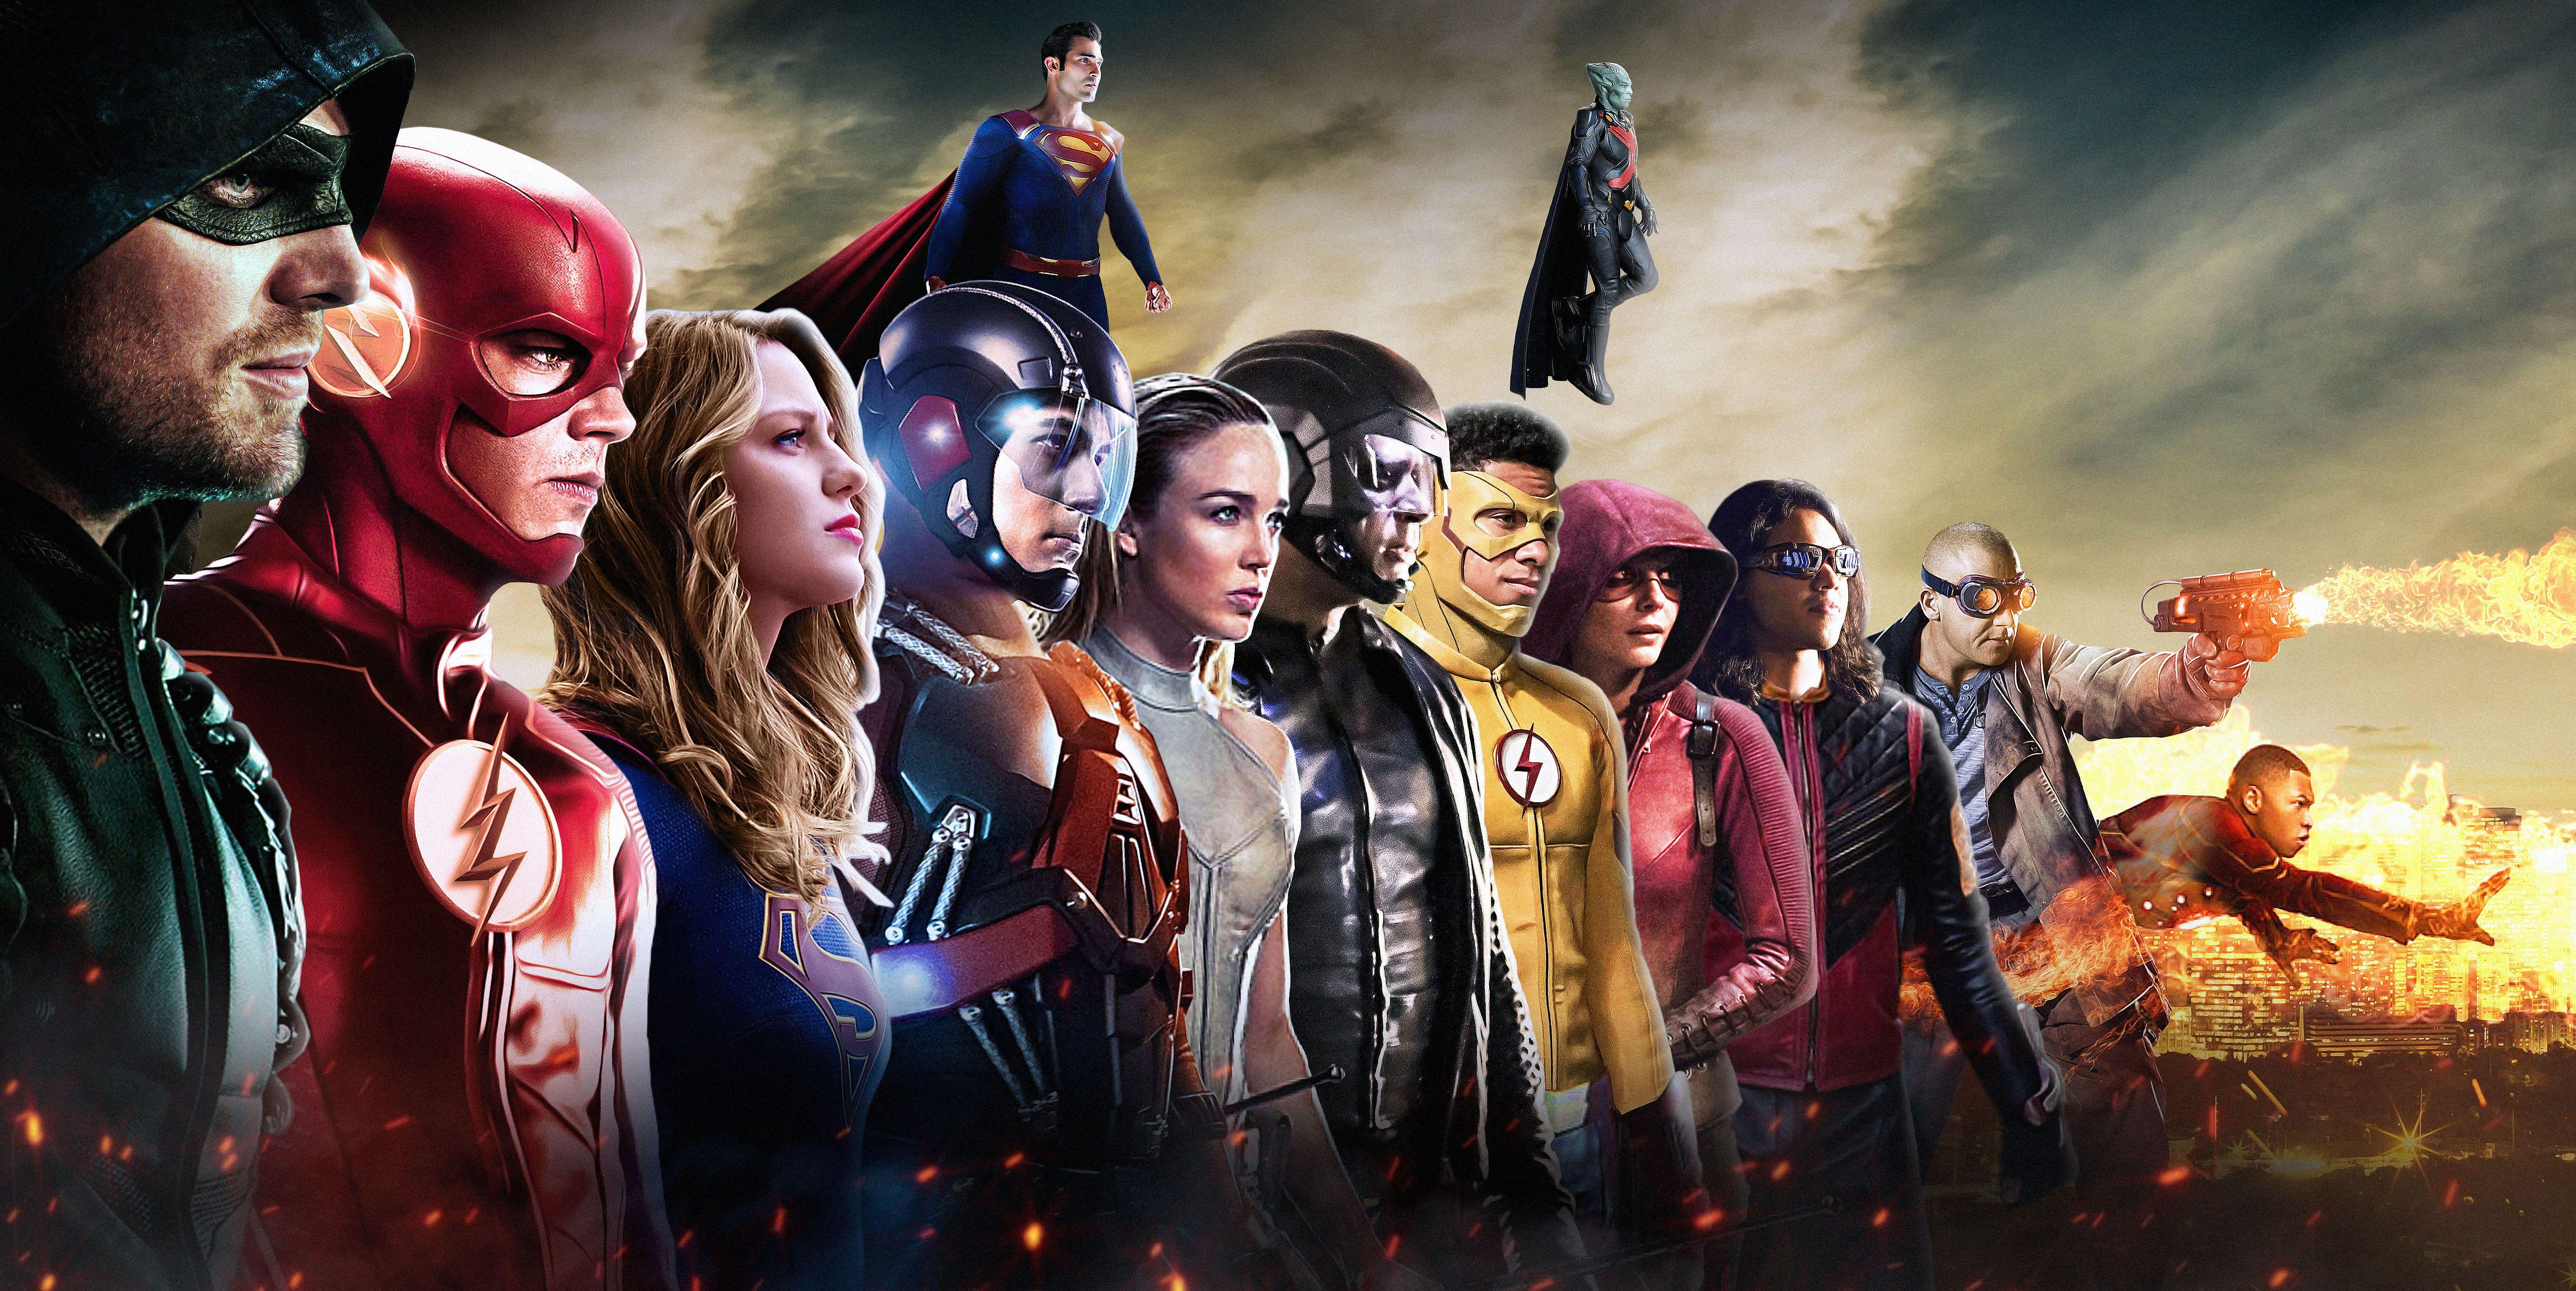 Download 12 Legends of Tomorrow Wallpapers